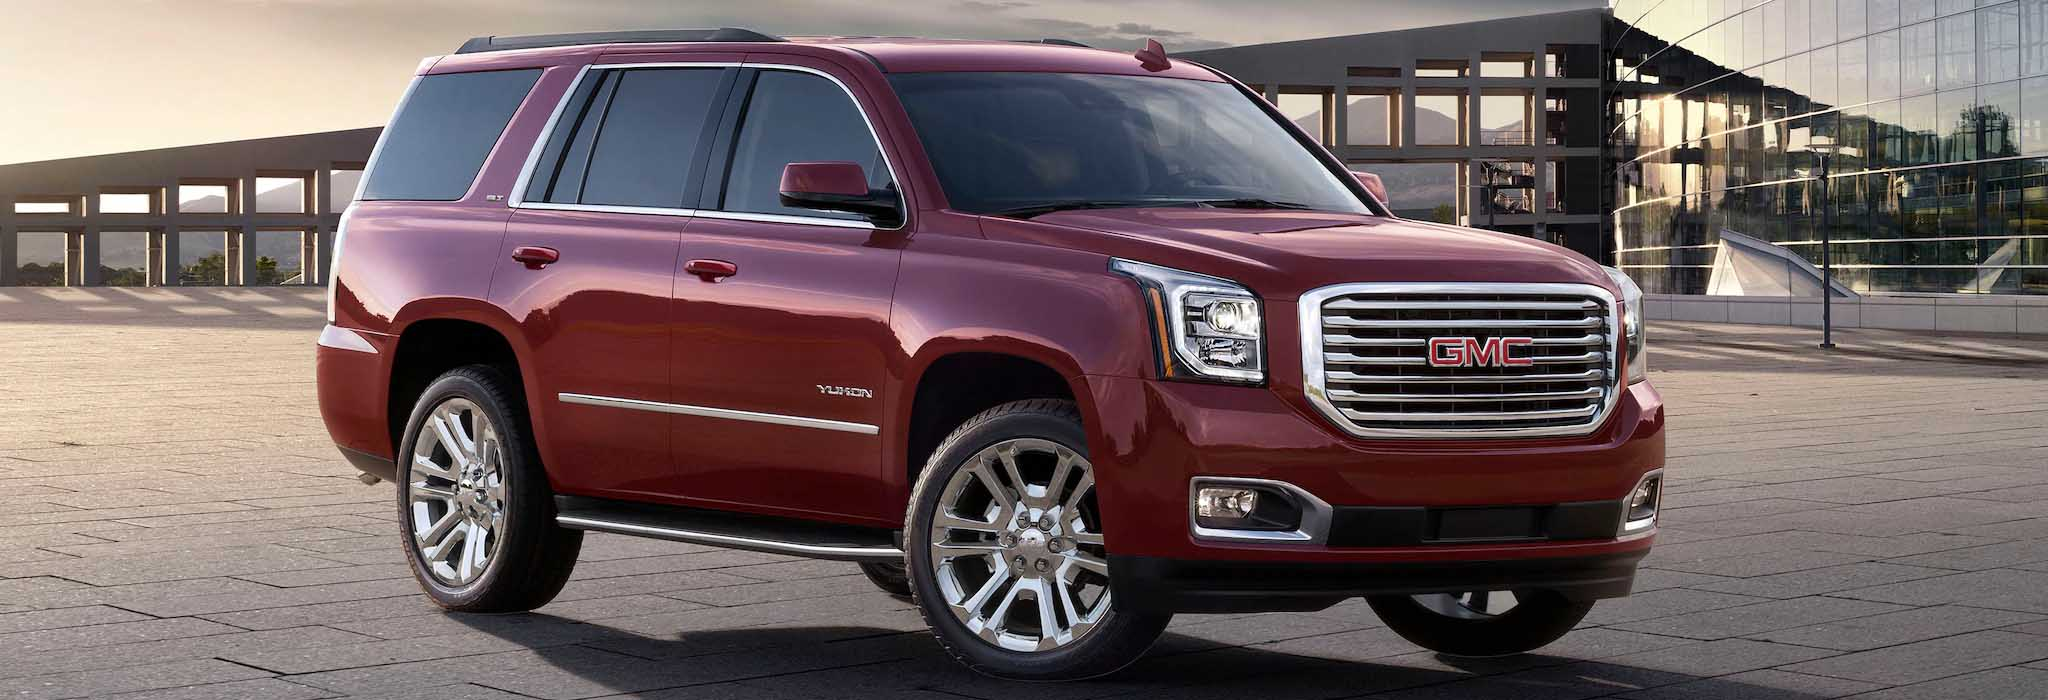 2020 GMC Yukon SUV in New Iberia, Louisiana, at Musson-Patout Automotive